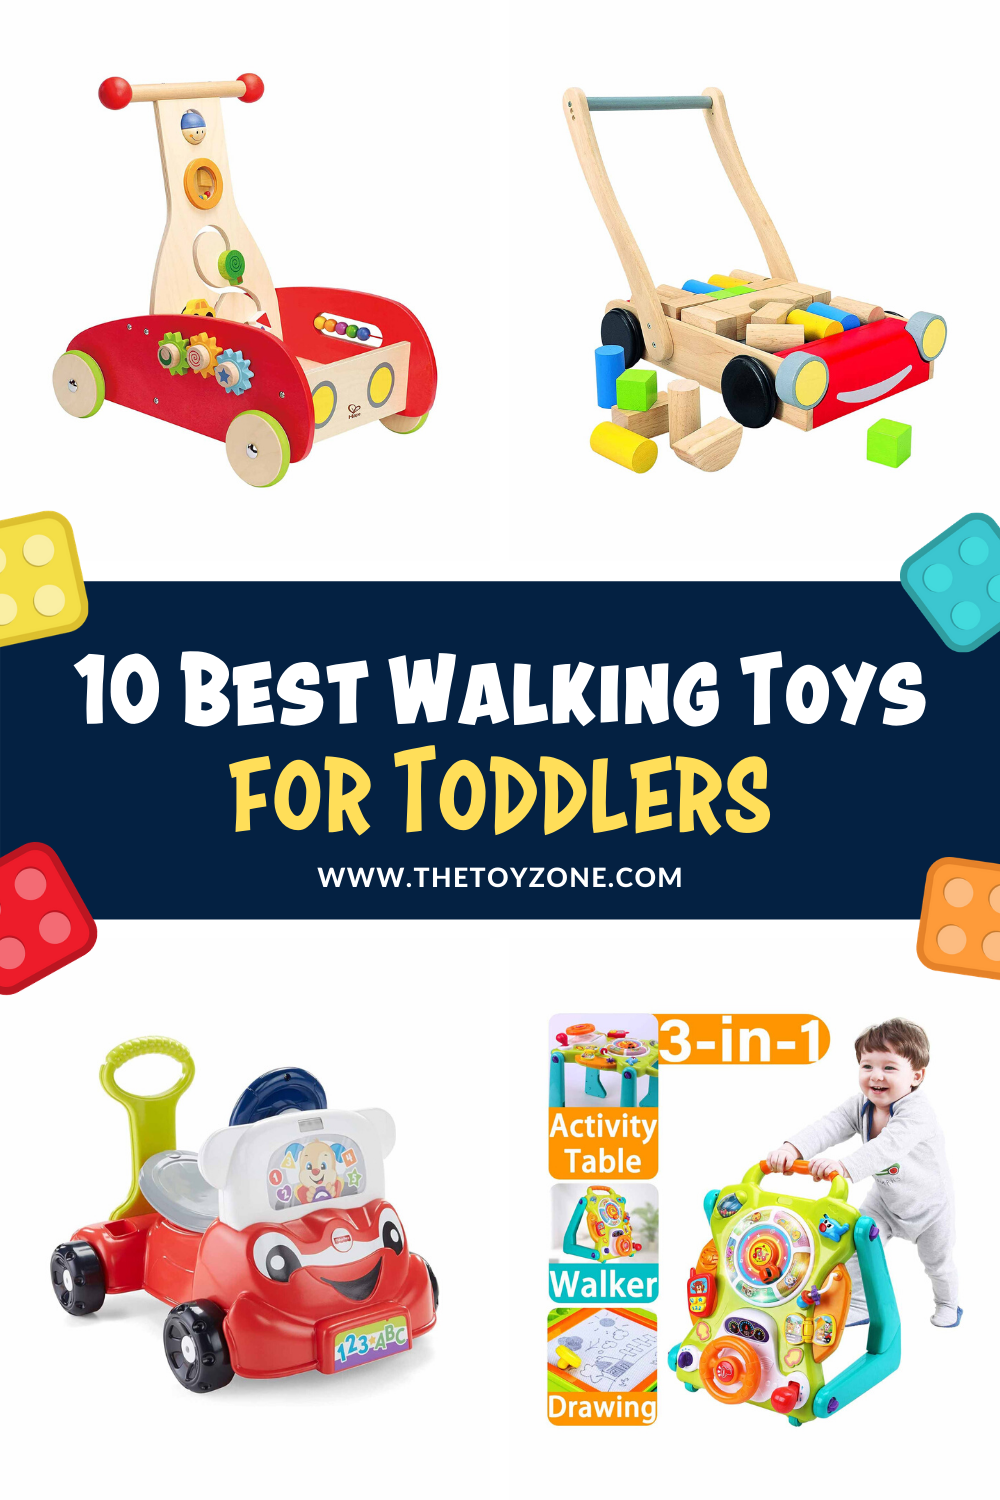 10 Best Walking Toys for Toddlers 2020 - TheToyZone in ...